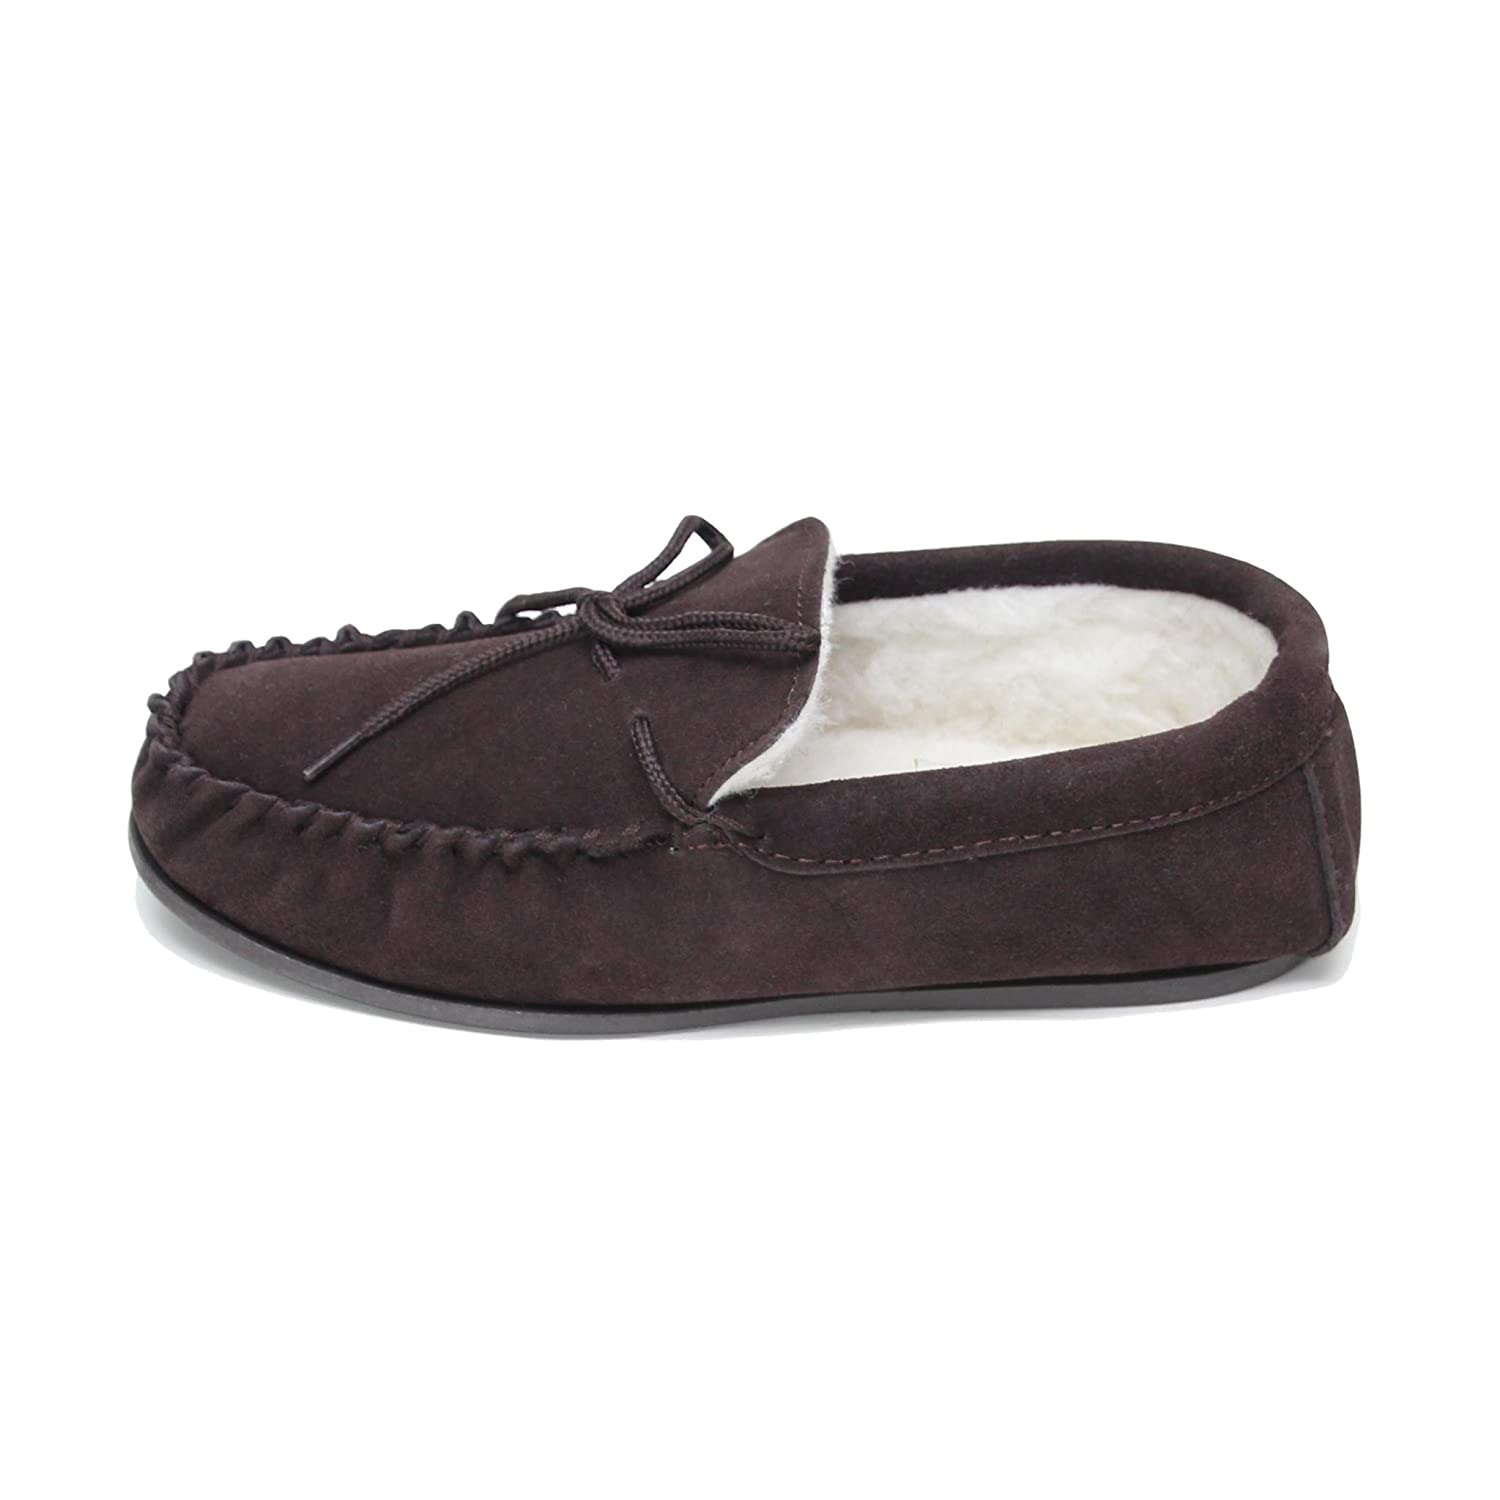 dbd93839f3f Deluxe Mens Lambswool Moccasin Slippers with Hard Sole - Suede Upper   Amazon.co.uk  Shoes   Bags